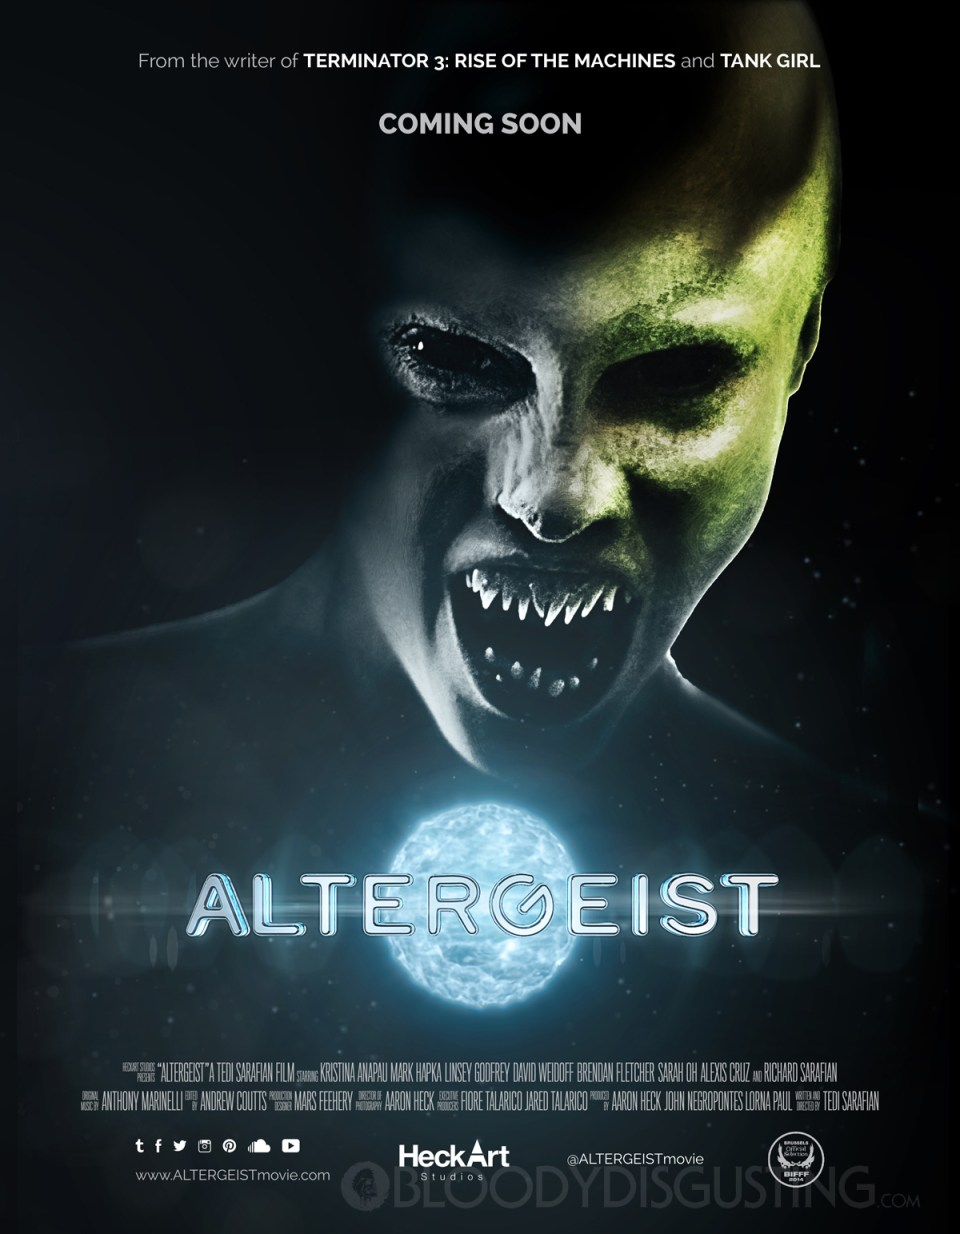 ALTERGEIST-cannesMarketPoster2014